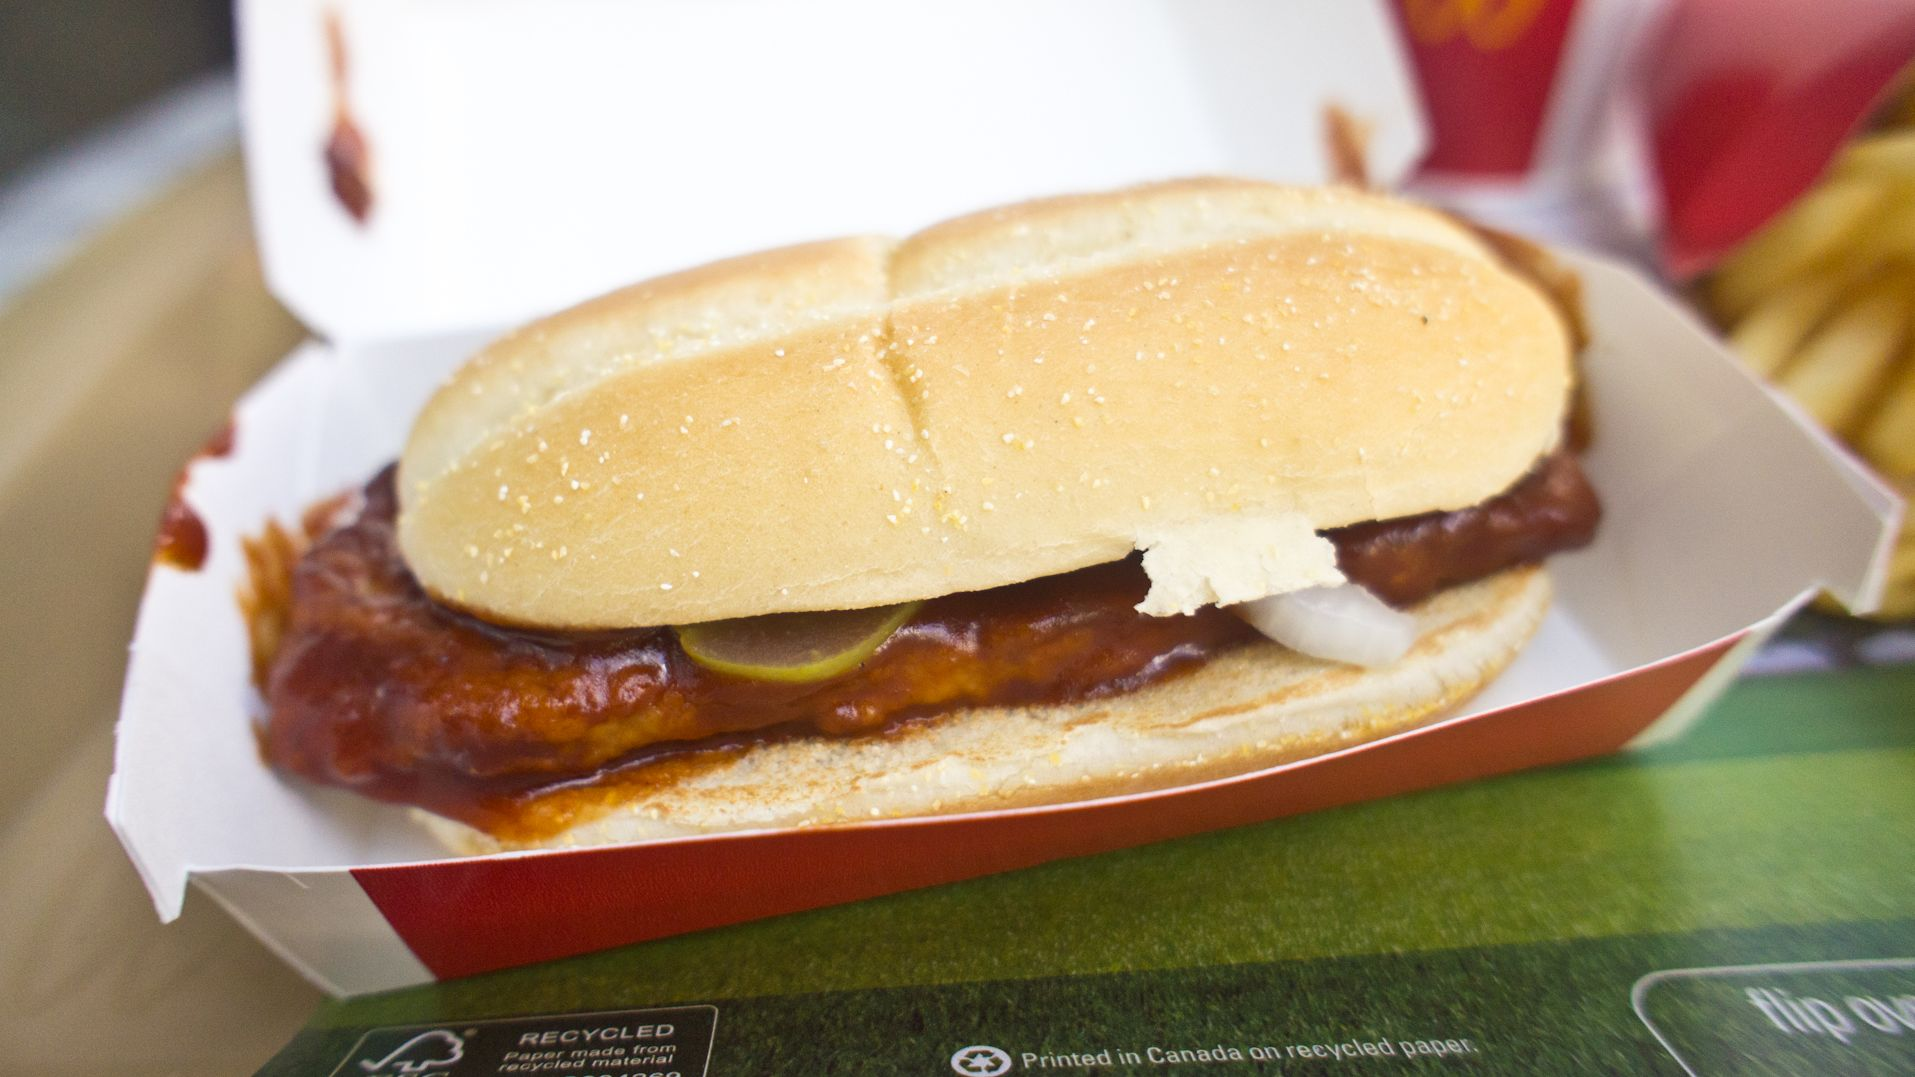 The Reason McDonald's Doesn't Sell McRib Sandwiches Year-Round